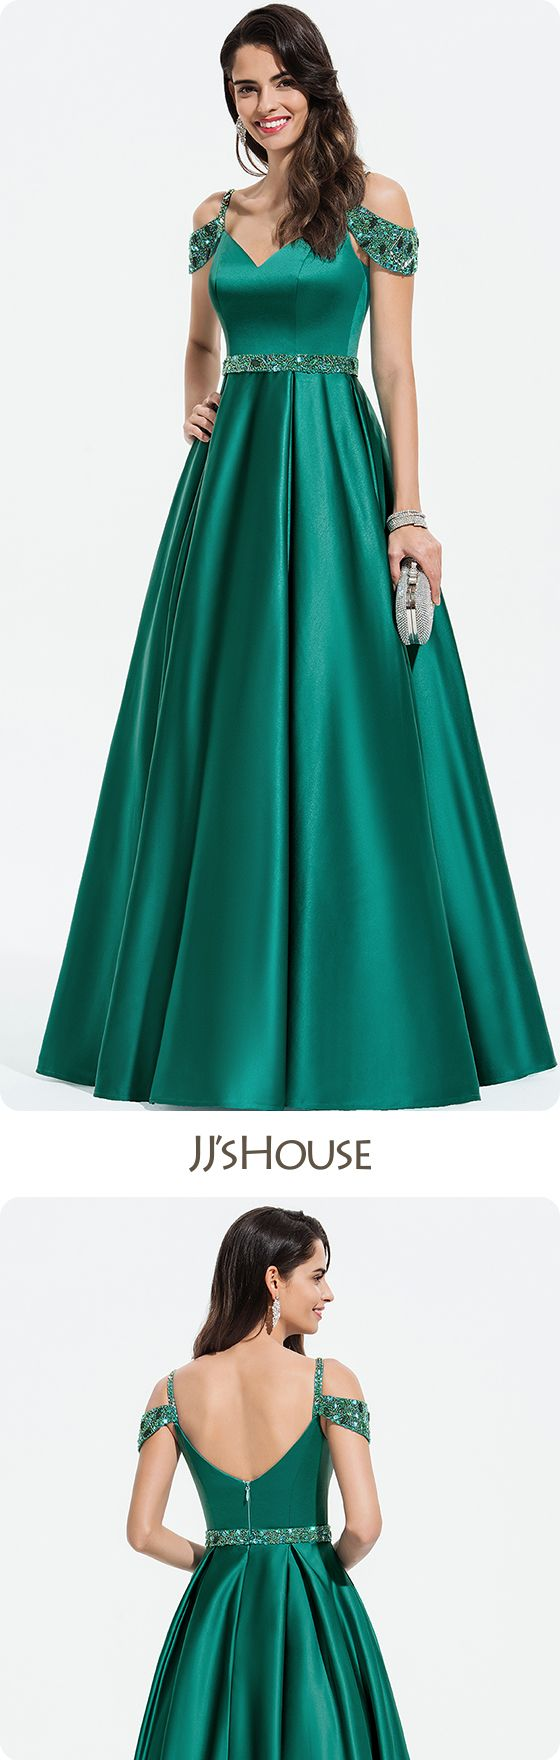 JJsHouse Ball-Gown/Princess V-neck Floor-Length Satin Prom Dresses With Beading Sequins